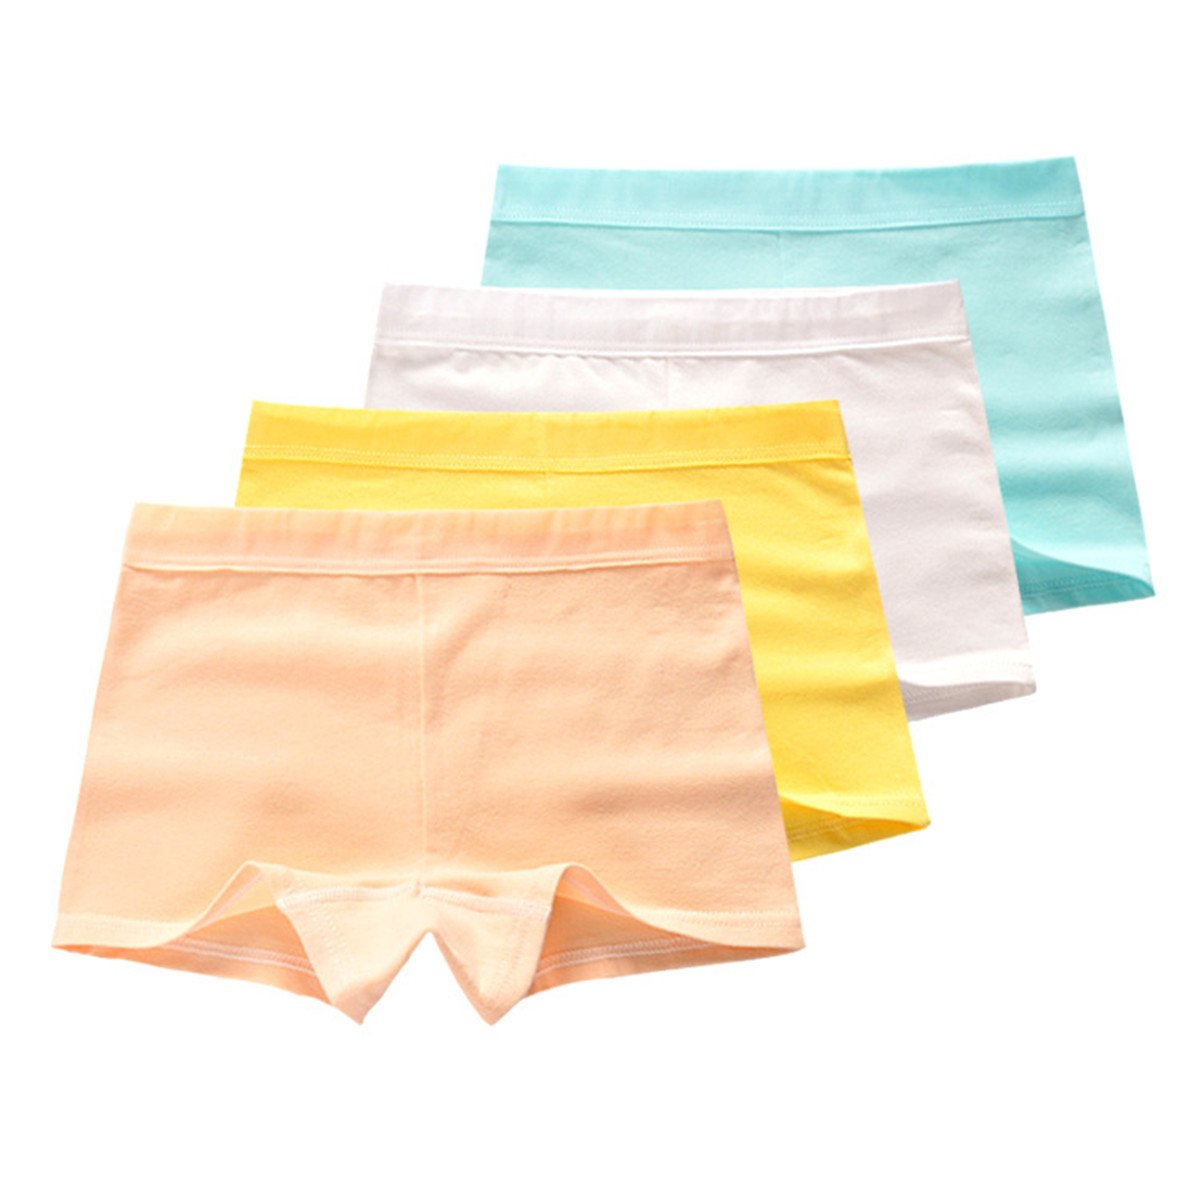 Little Girls Kids Baby Toddler 4Pcs Solid Color Boyshort Underwear Boxers Briefs Panties